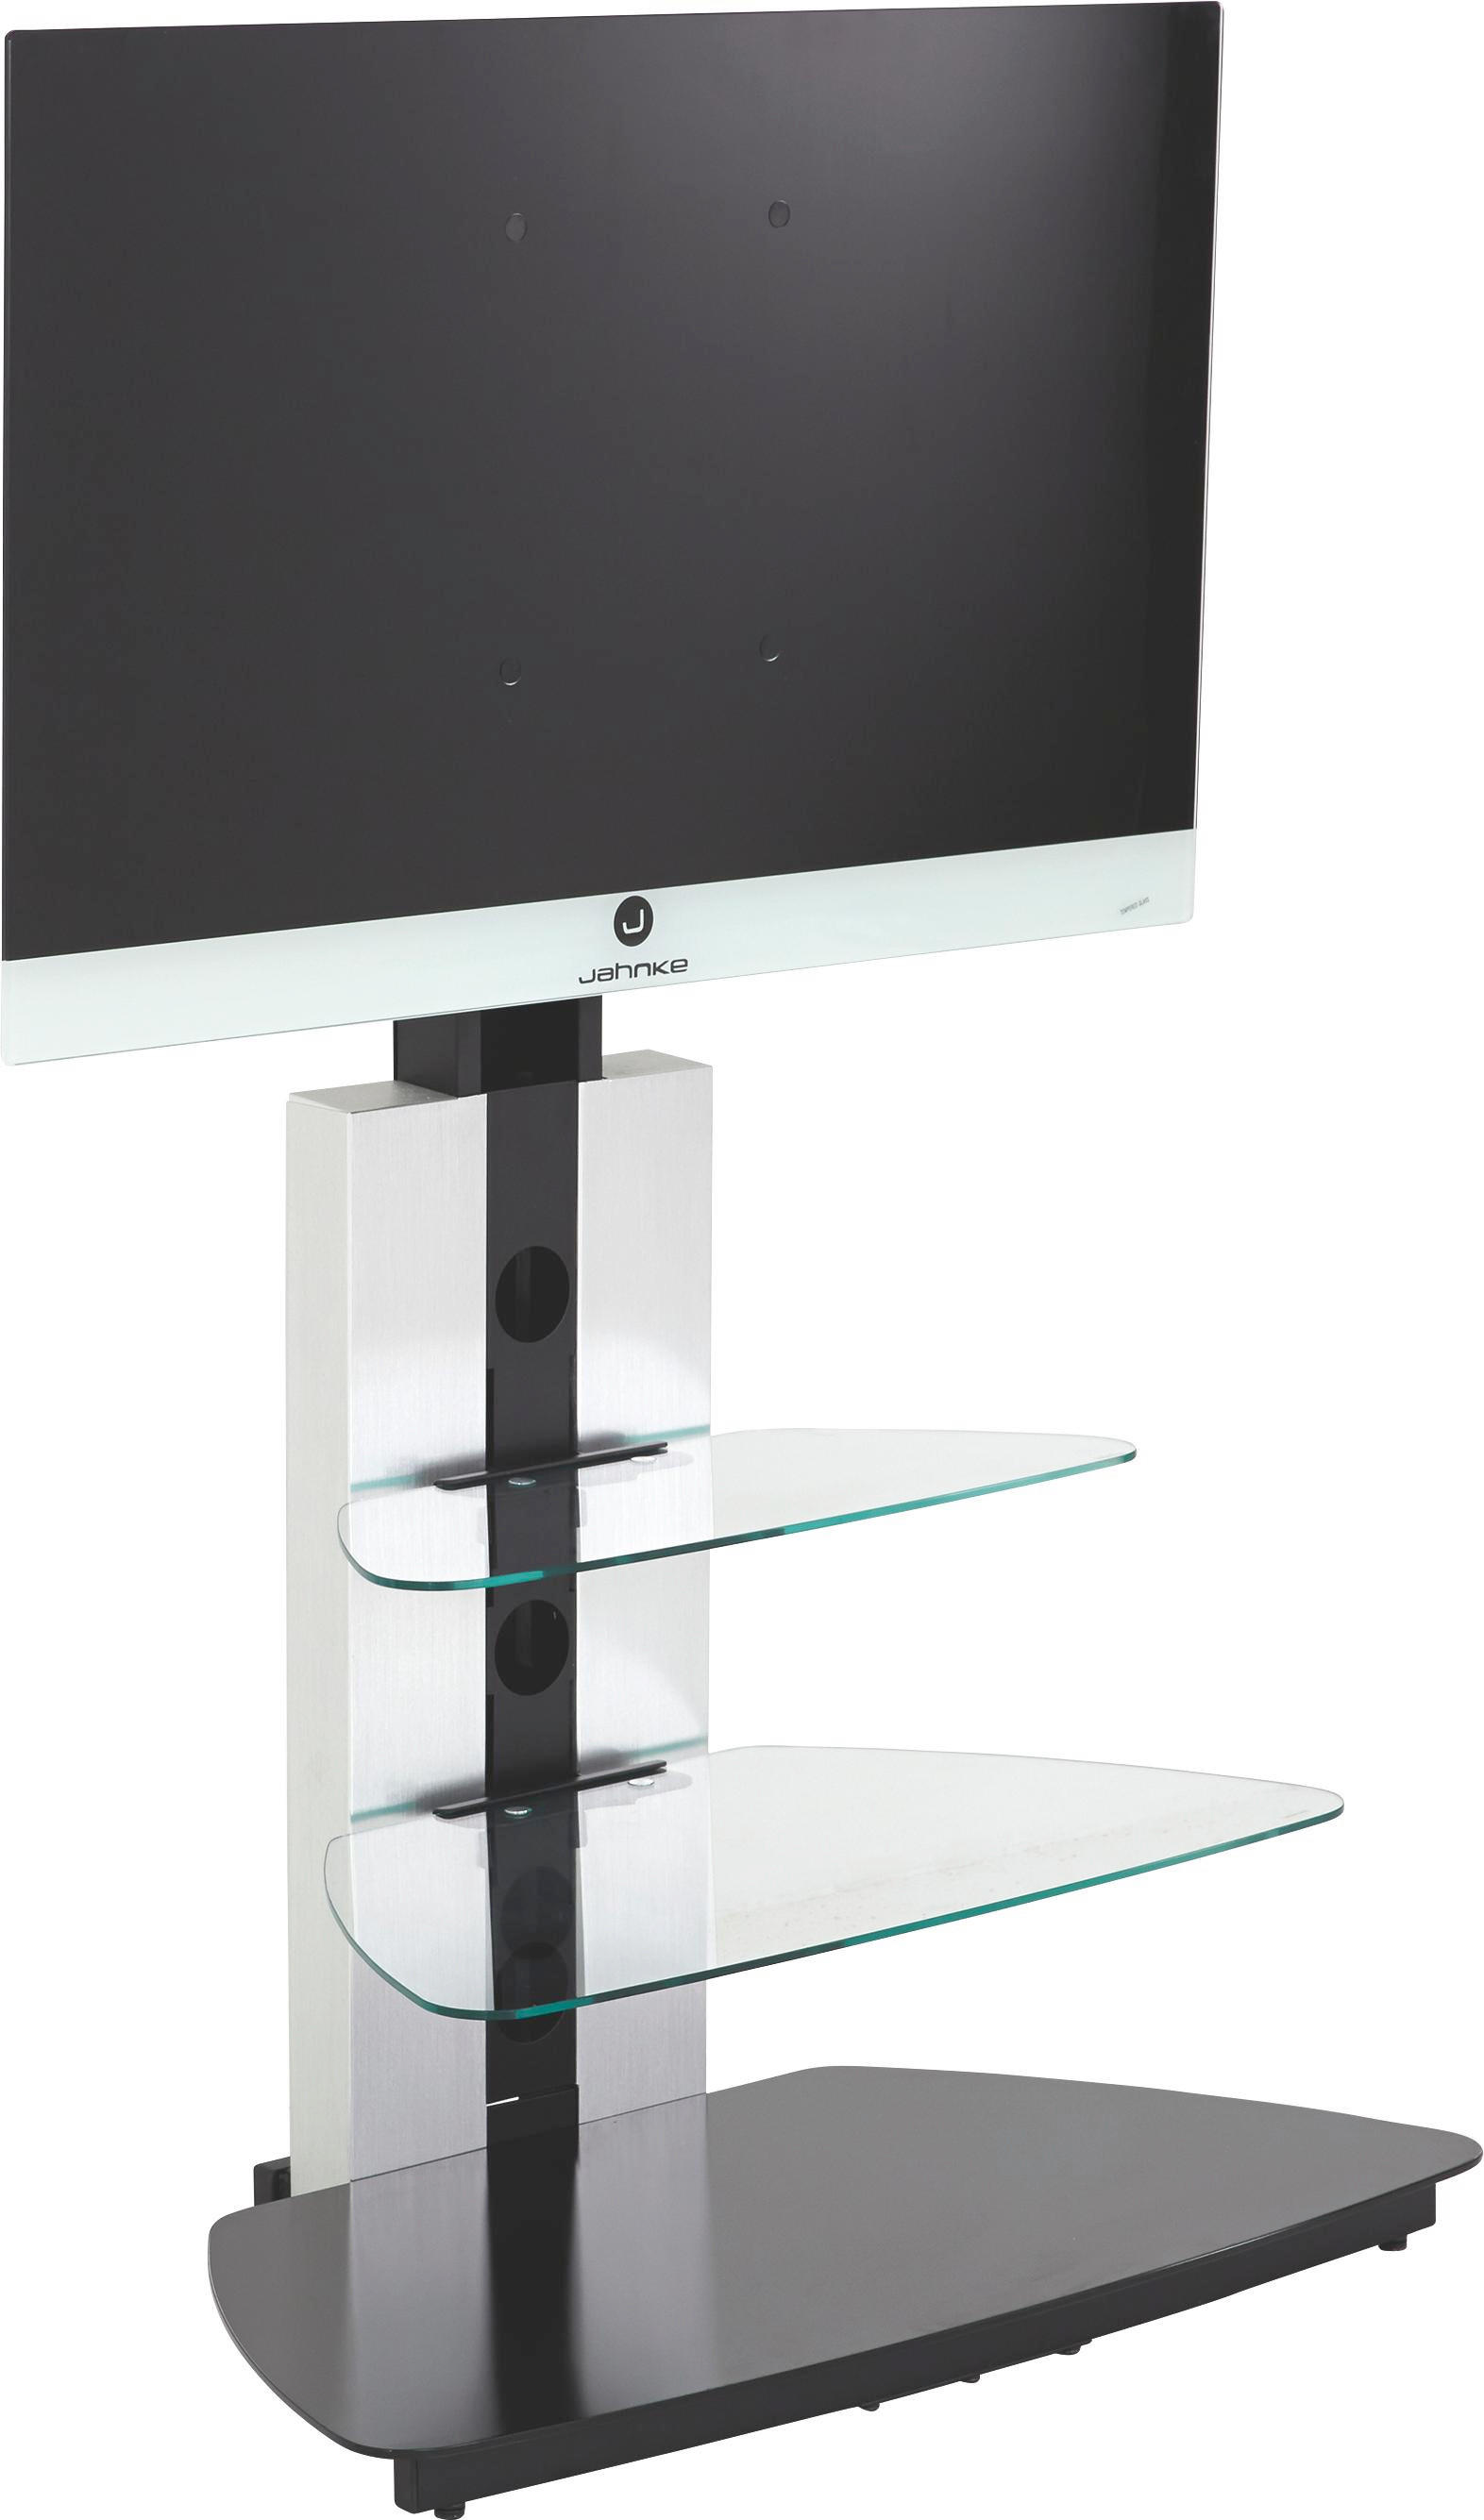 Latest Amazing Tvrack Glas Metall Schwarz Schwarz Design Glasmetall With Tv  Rack Schwarz With Glas Rack With Schwarz Glas